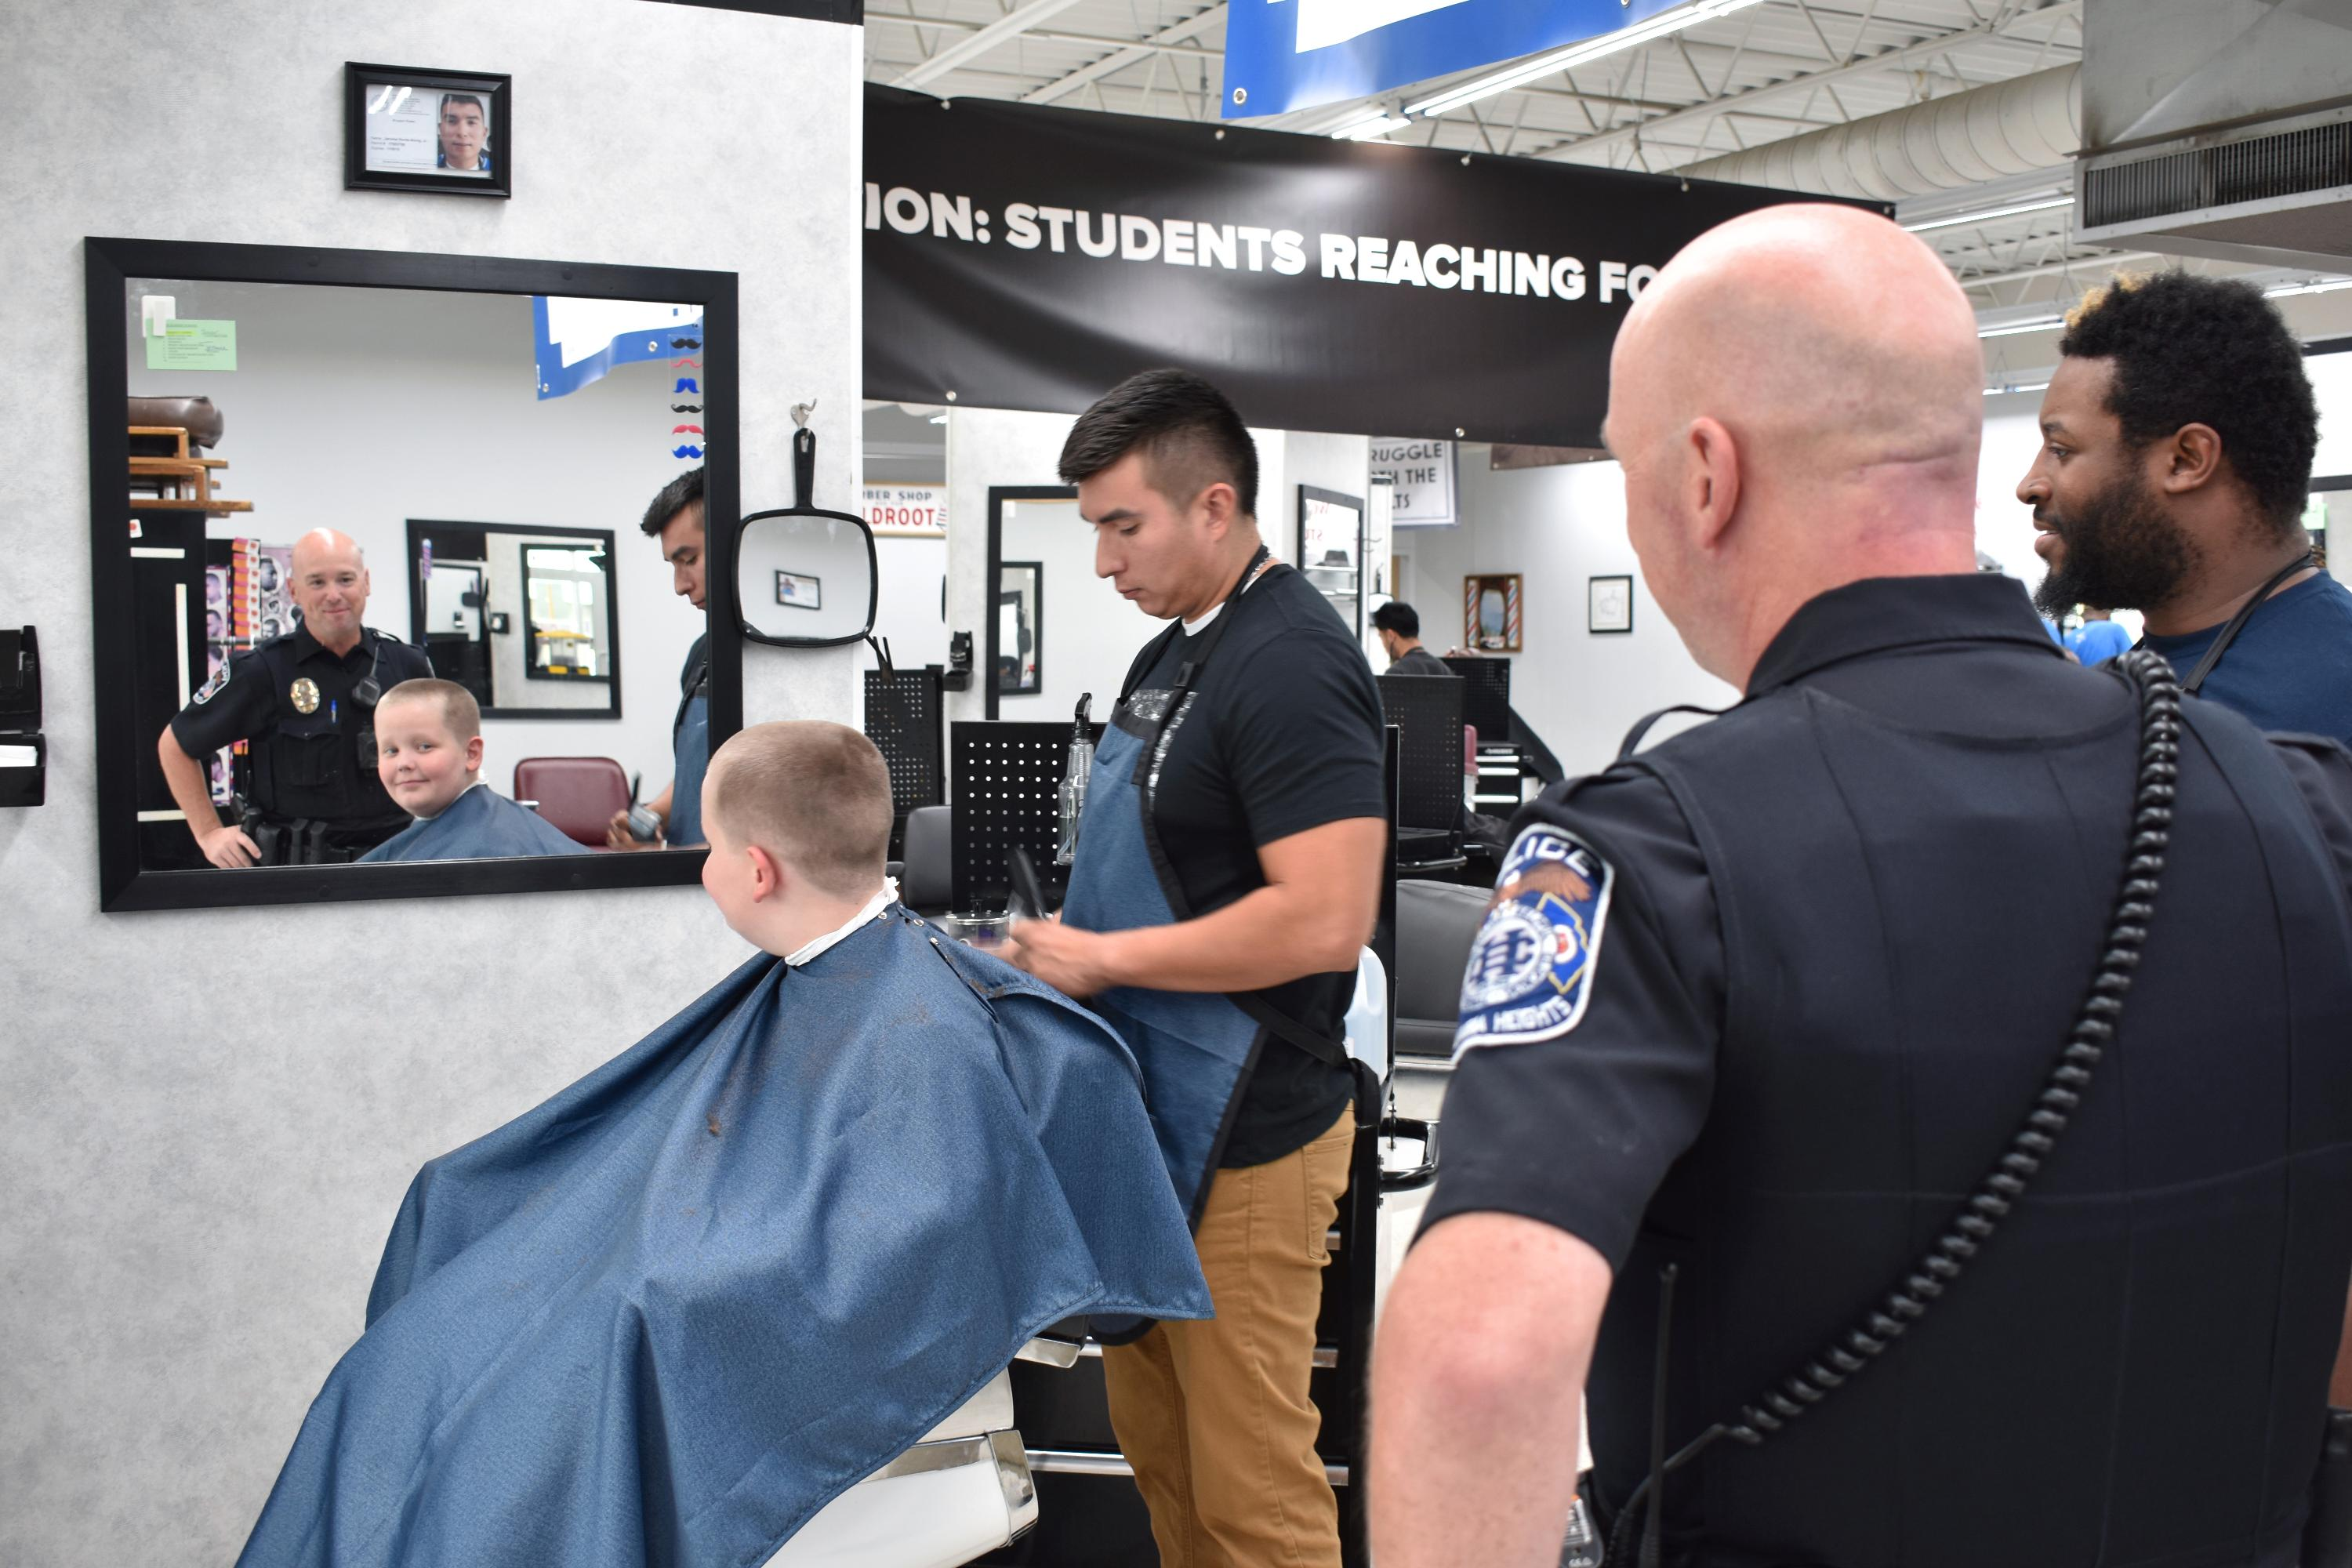 Cuts with a Cop with Jr. Kretzmann (5th grader)